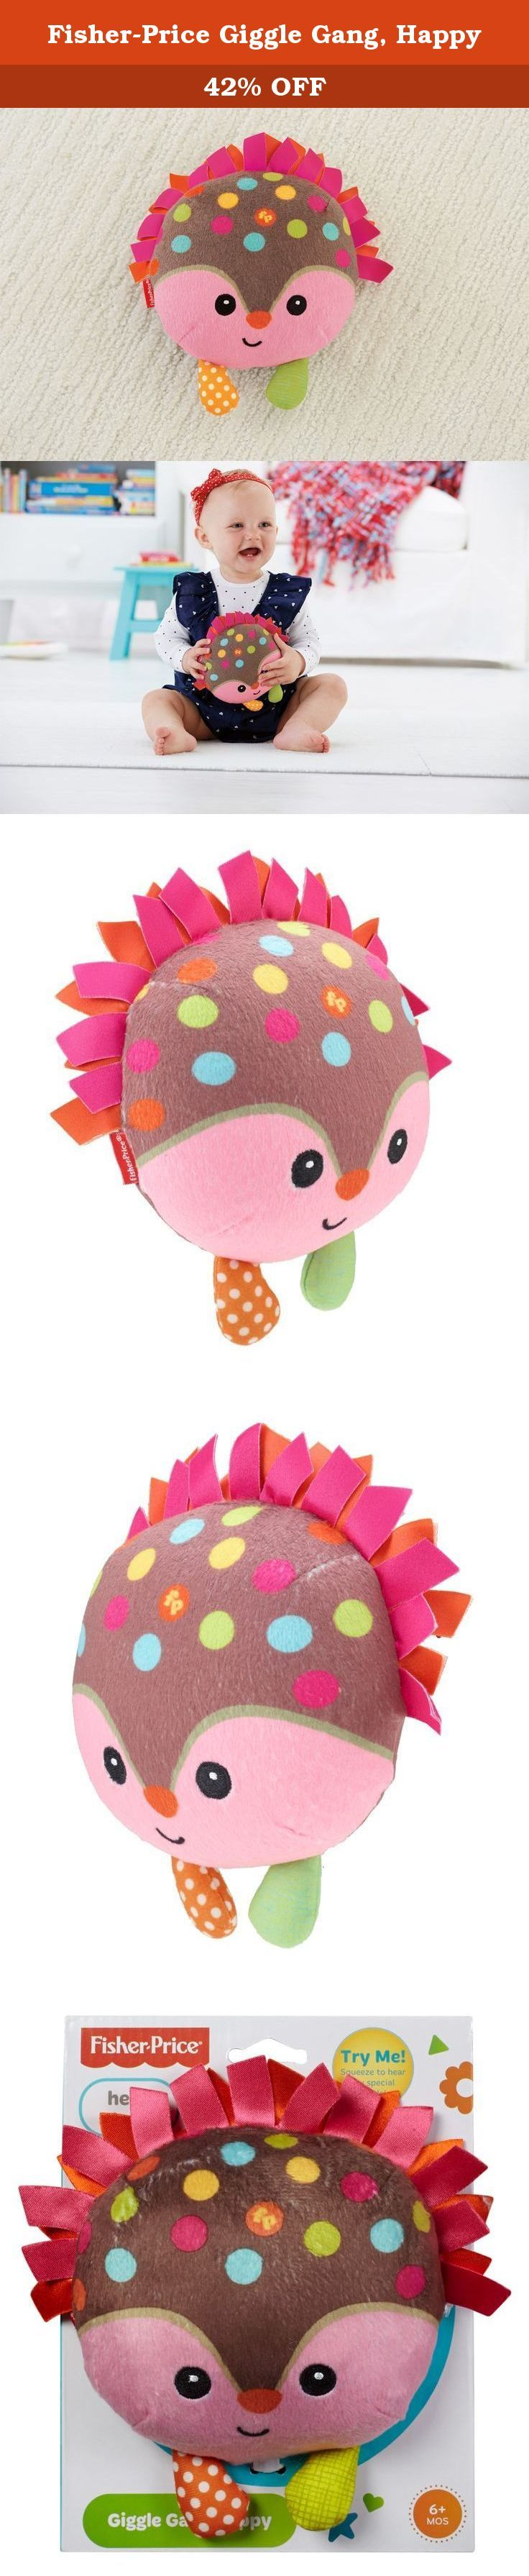 Fisher-Price Giggle Gang, Happy. Meet Happy, a new member of the Giggle Gang! This soft and cuddly hedgehog responds to baby's every shake and squeeze with tons of giggles and silly animal sounds! Bright patterns and colors reflect her wise personality, with soft textures to touch and feel, too. And just like baby, this adorable member of the Giggle Gang has her own cute (and contagious!) giggle!.